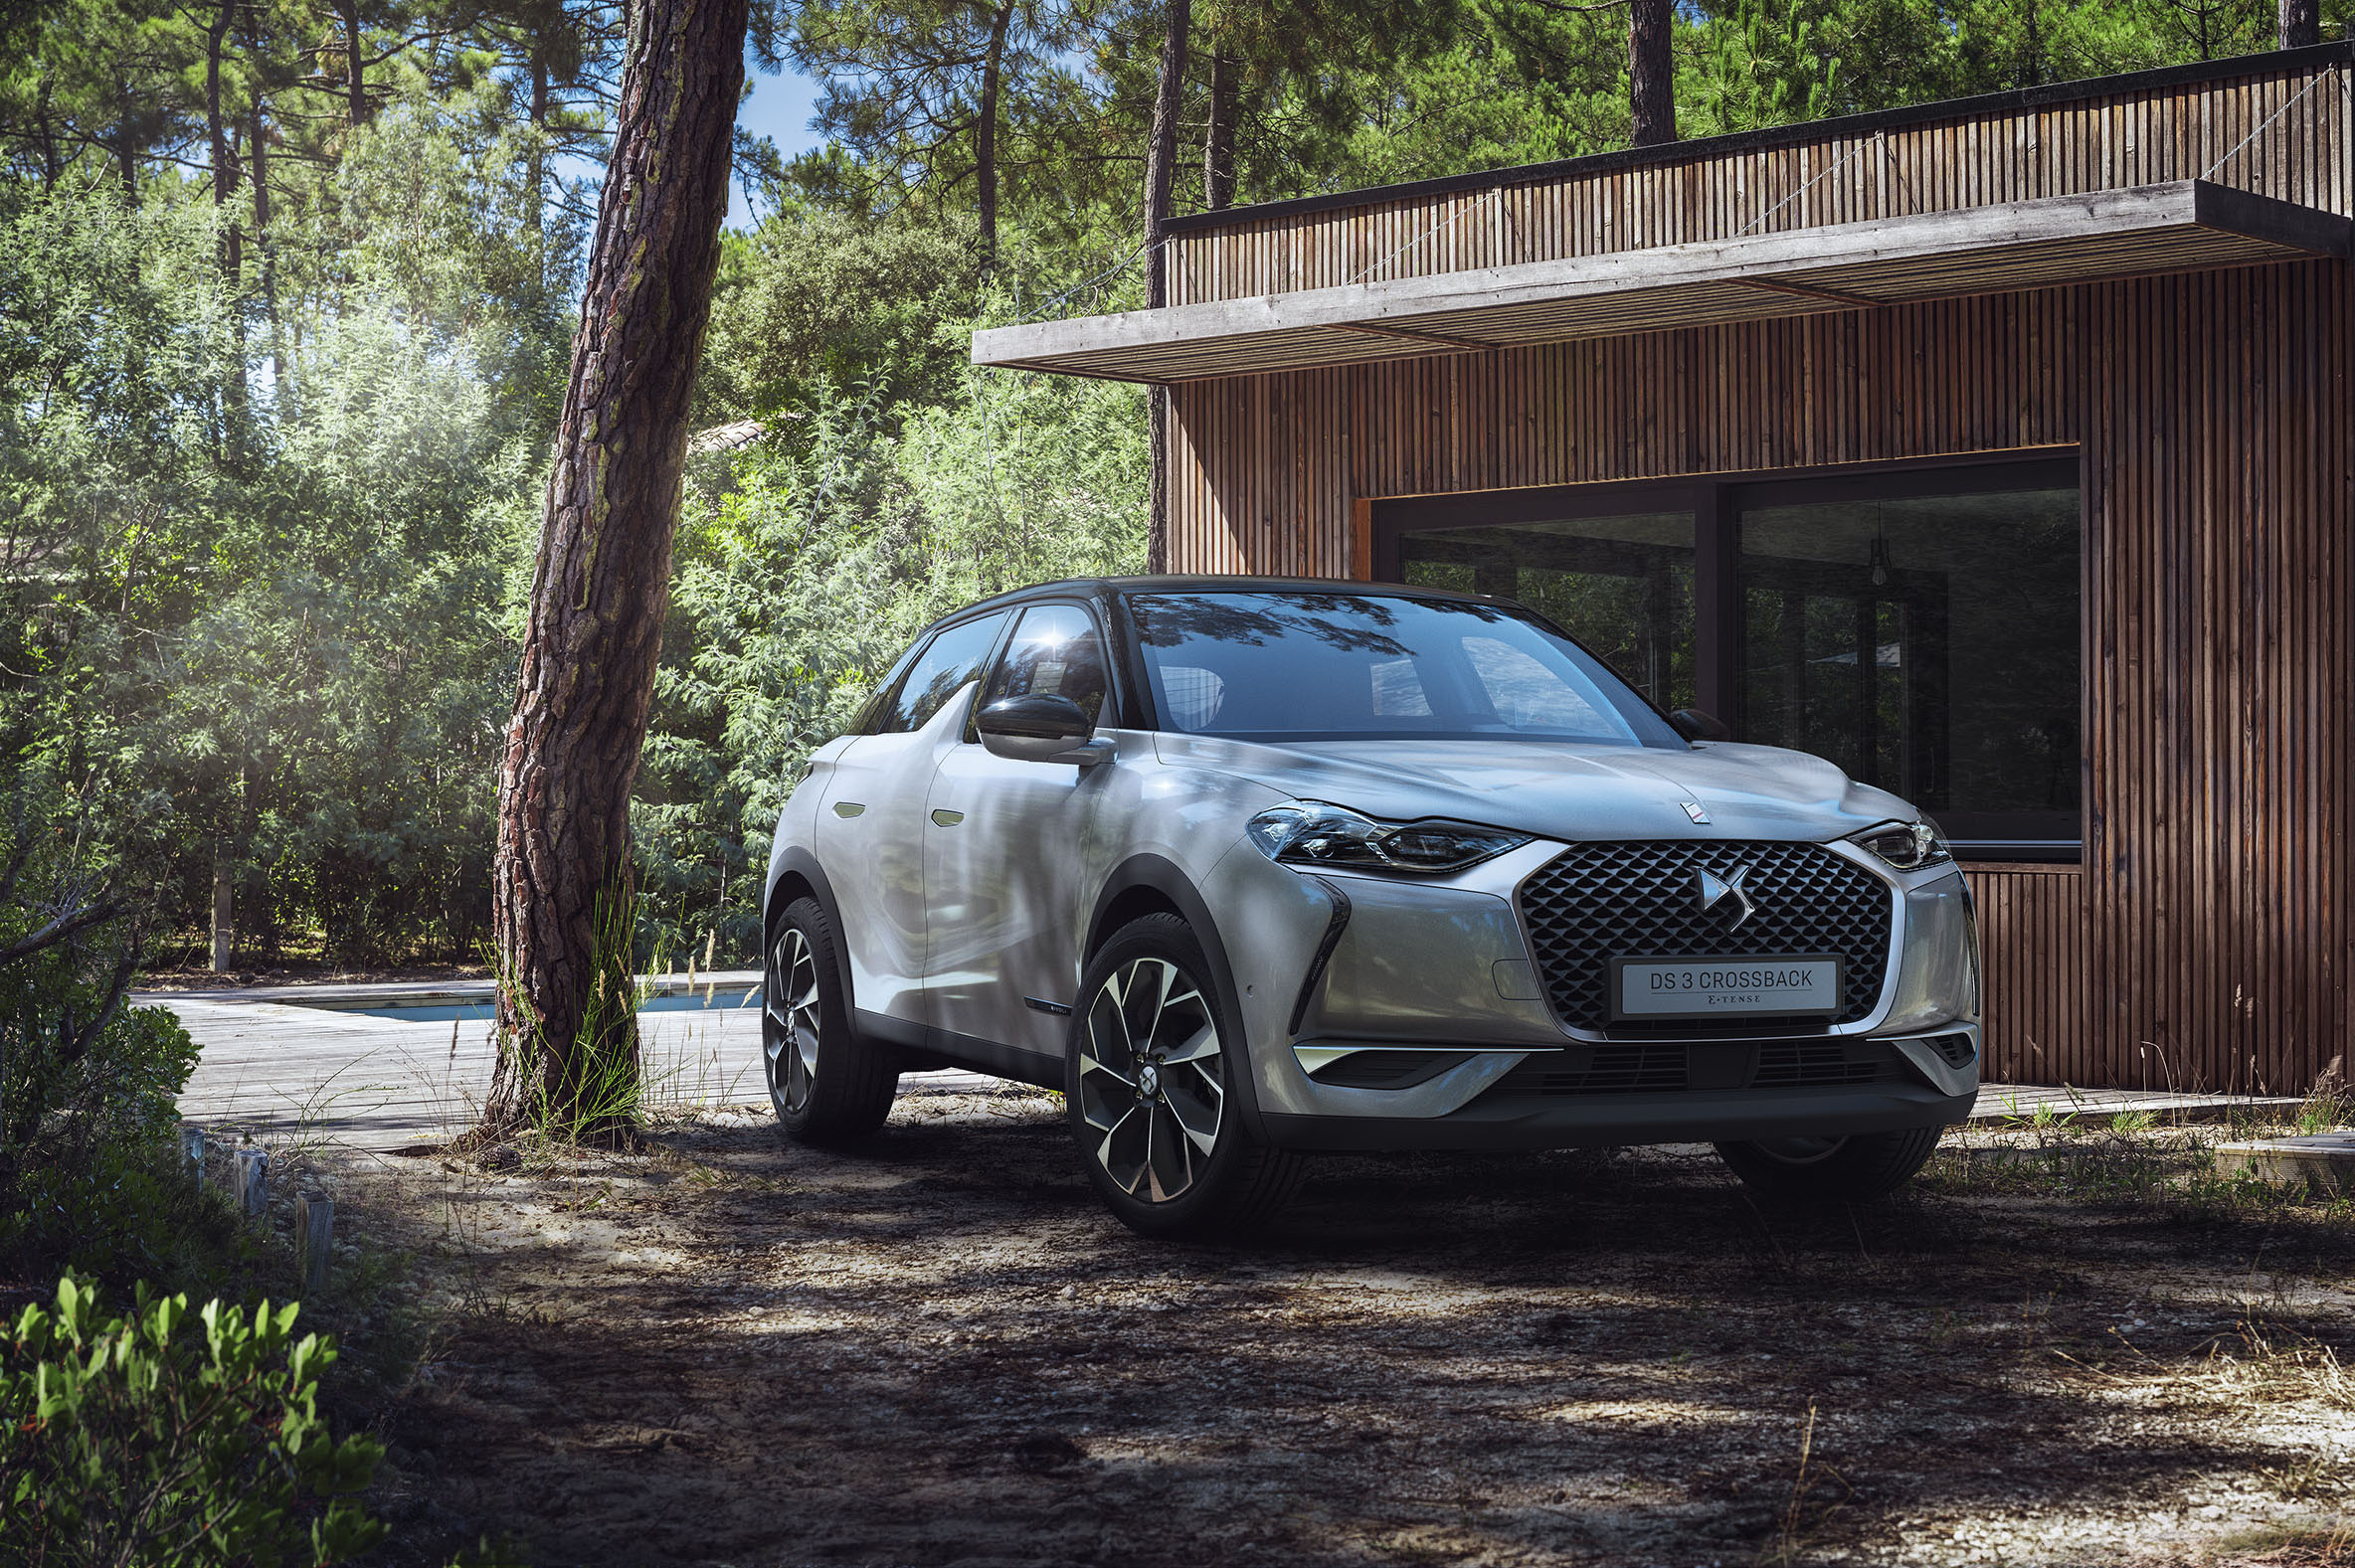 Meet the new DS 3 Crossback E-Tense